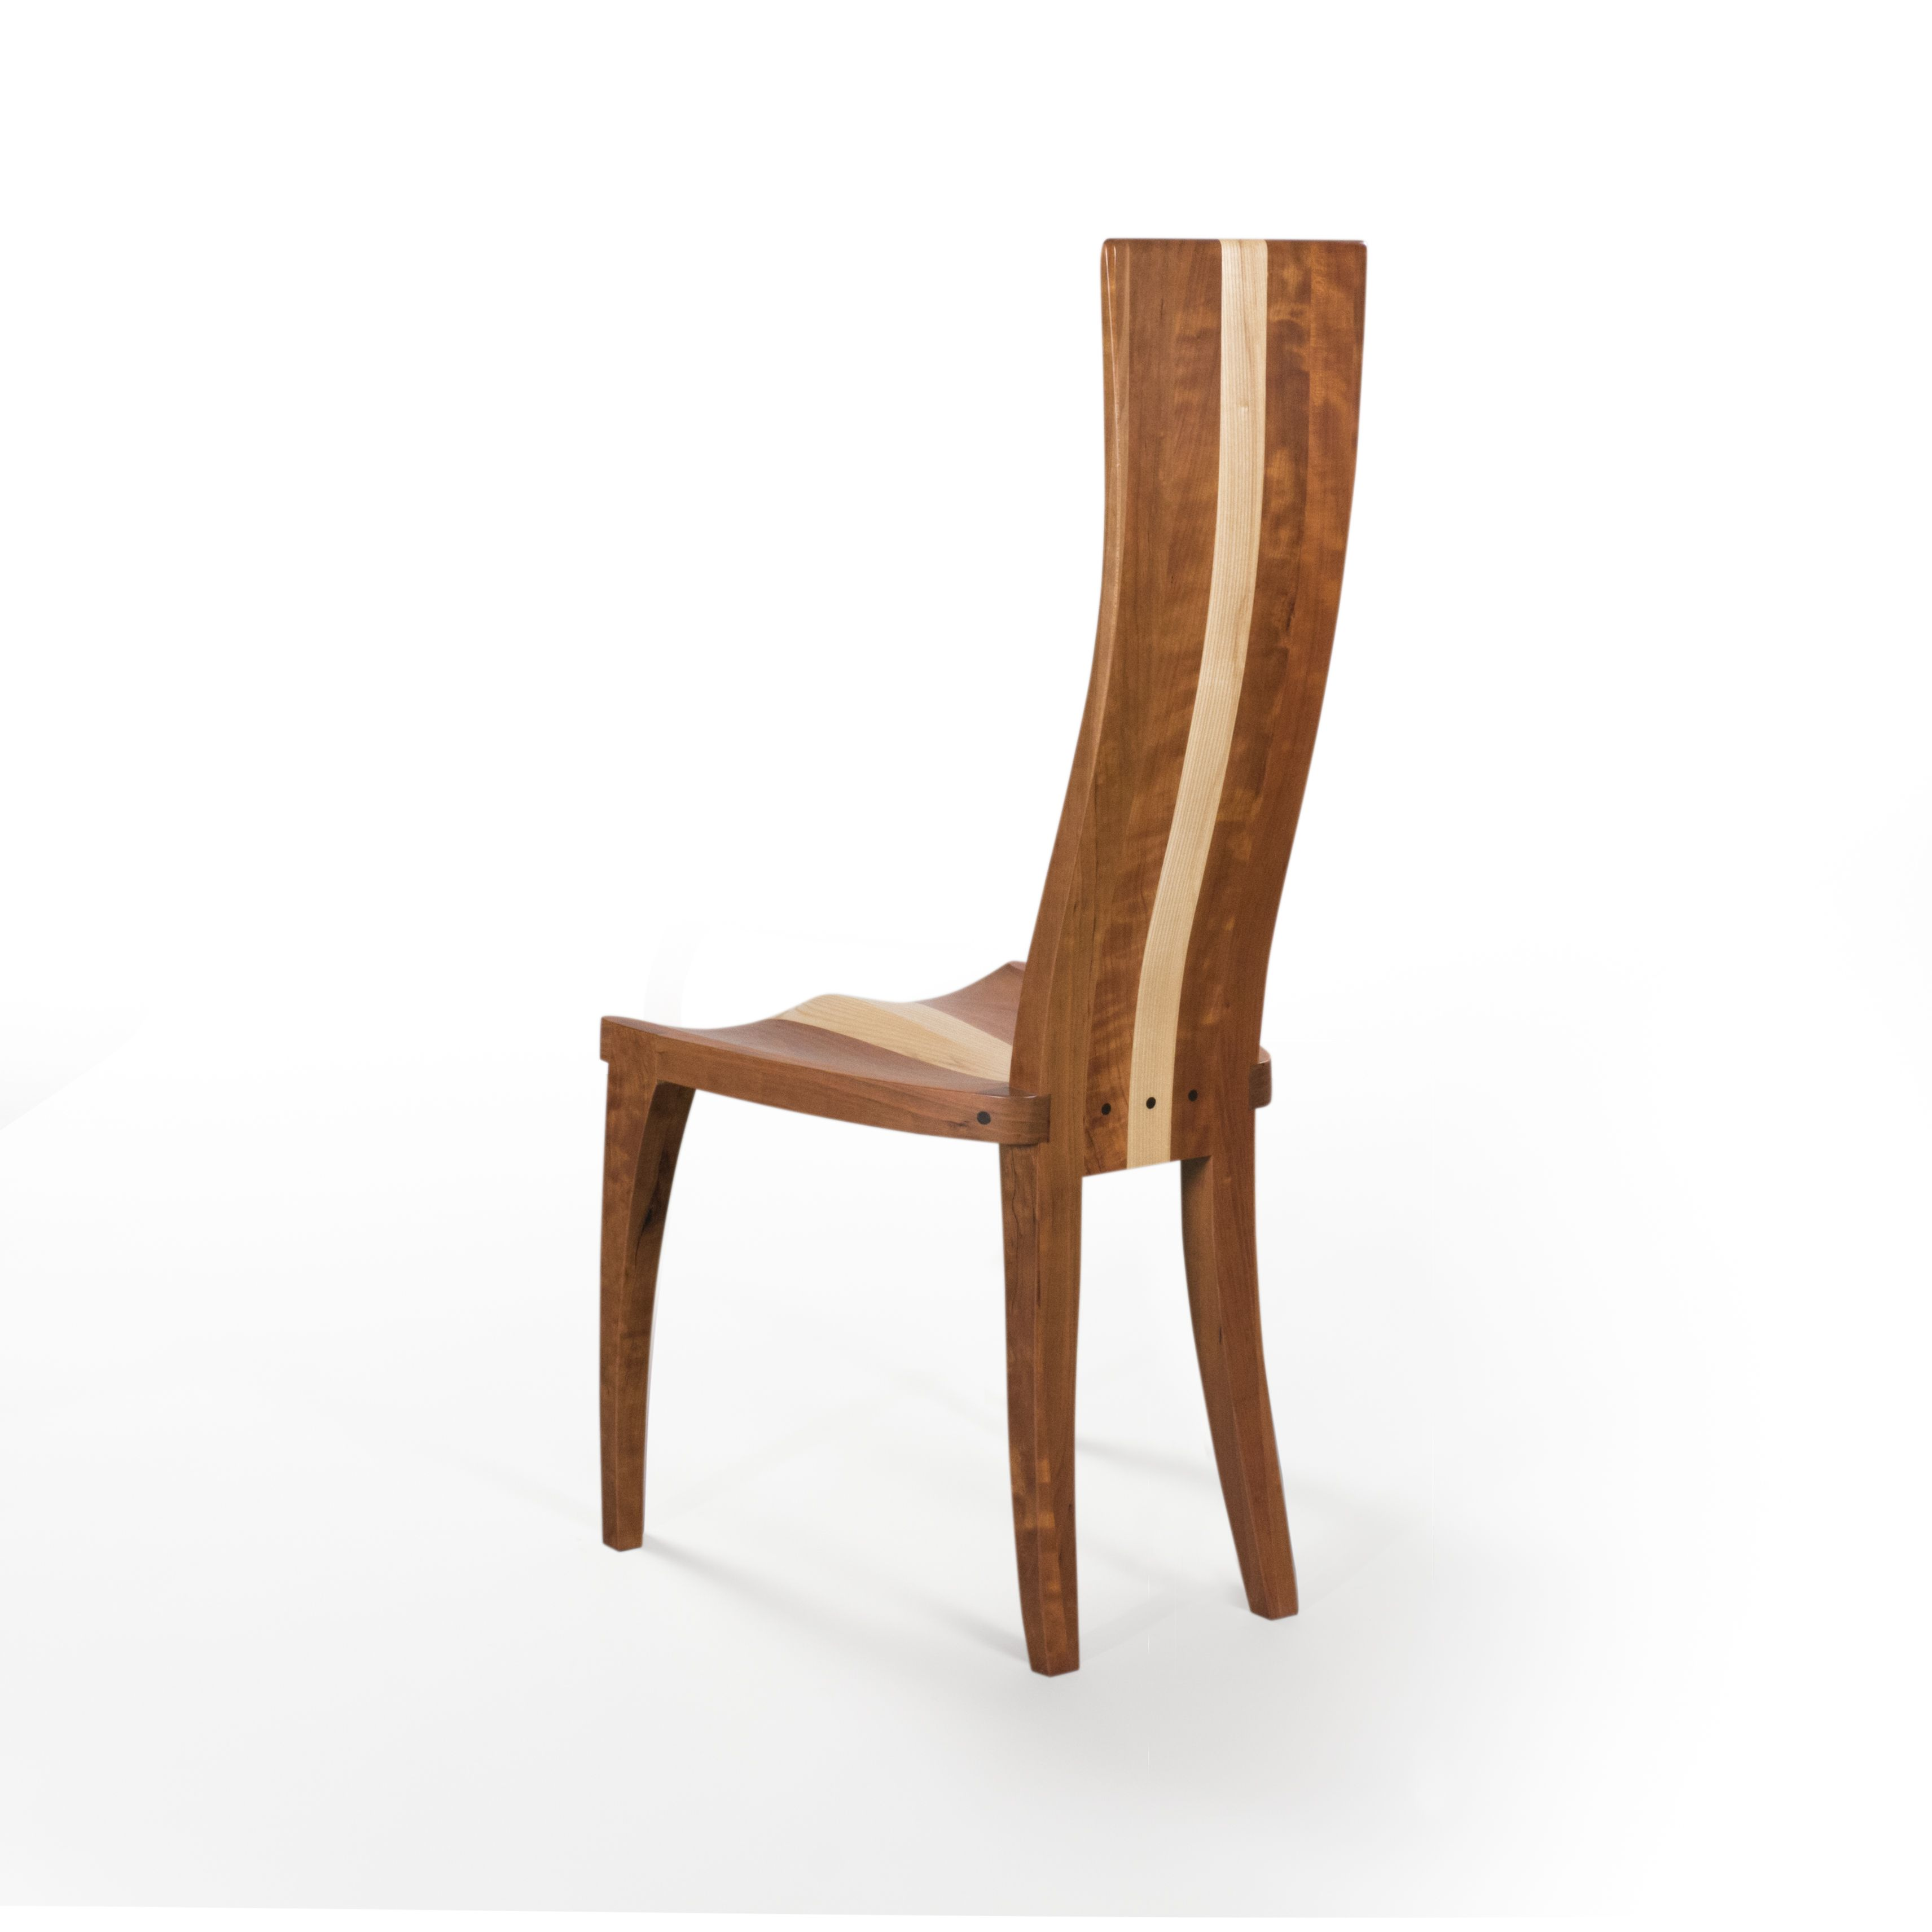 Handmade Modern Wood Dining Chair In Cherry And Curly